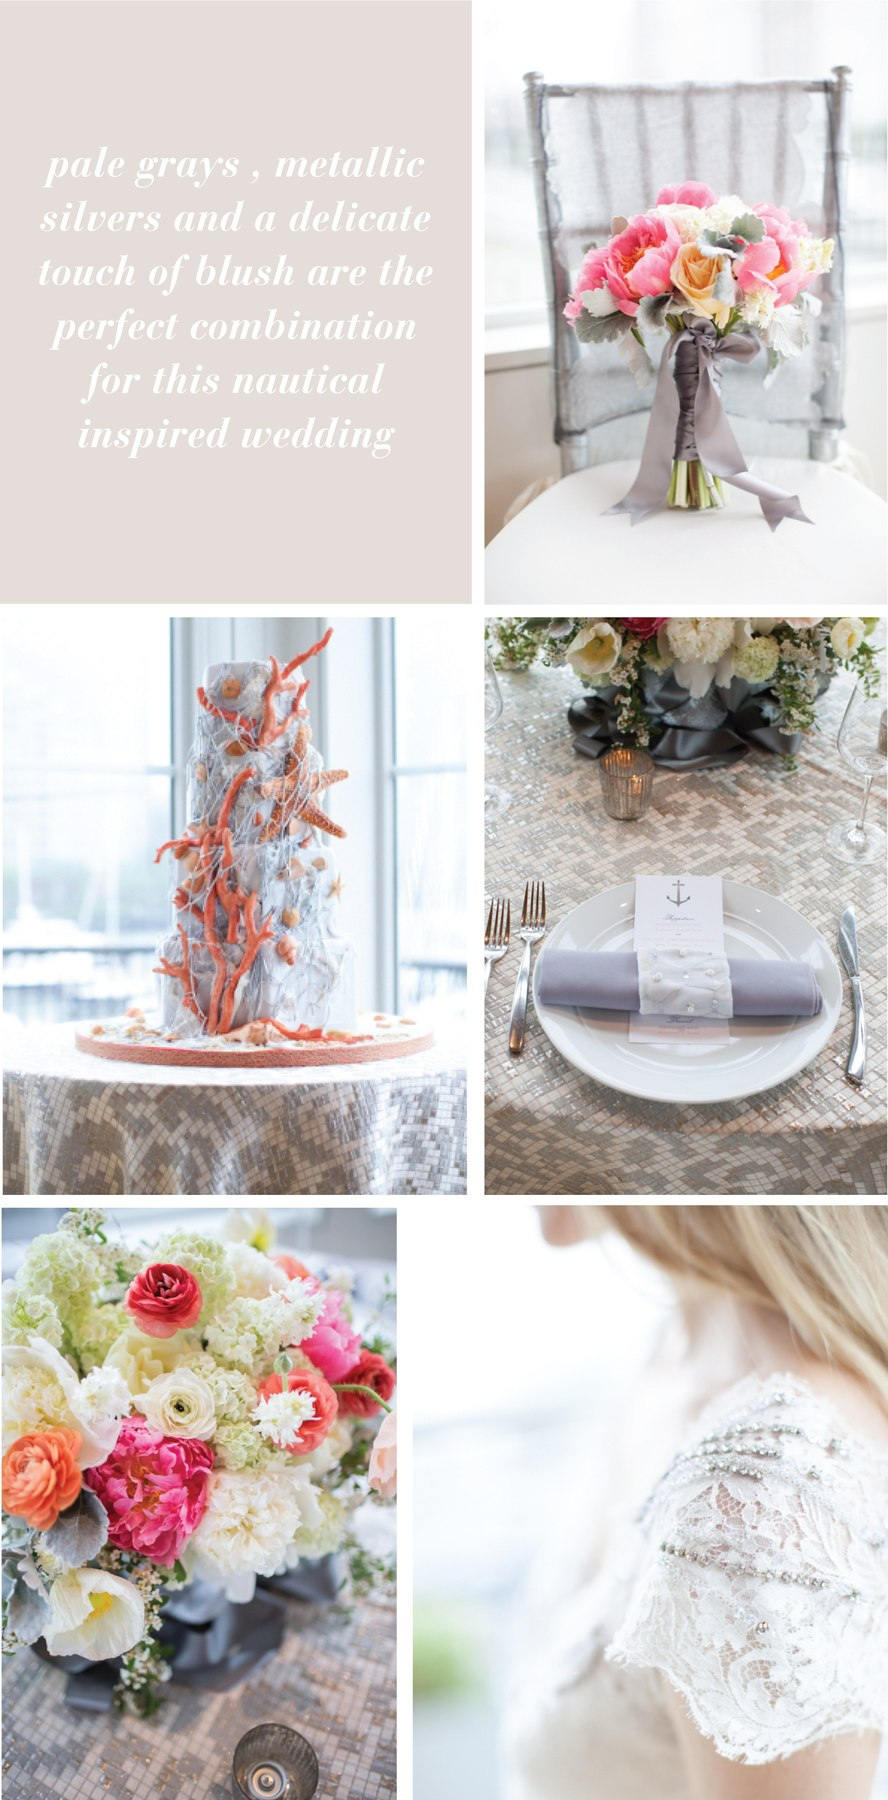 Nautical-Wedding-Inspiration-5